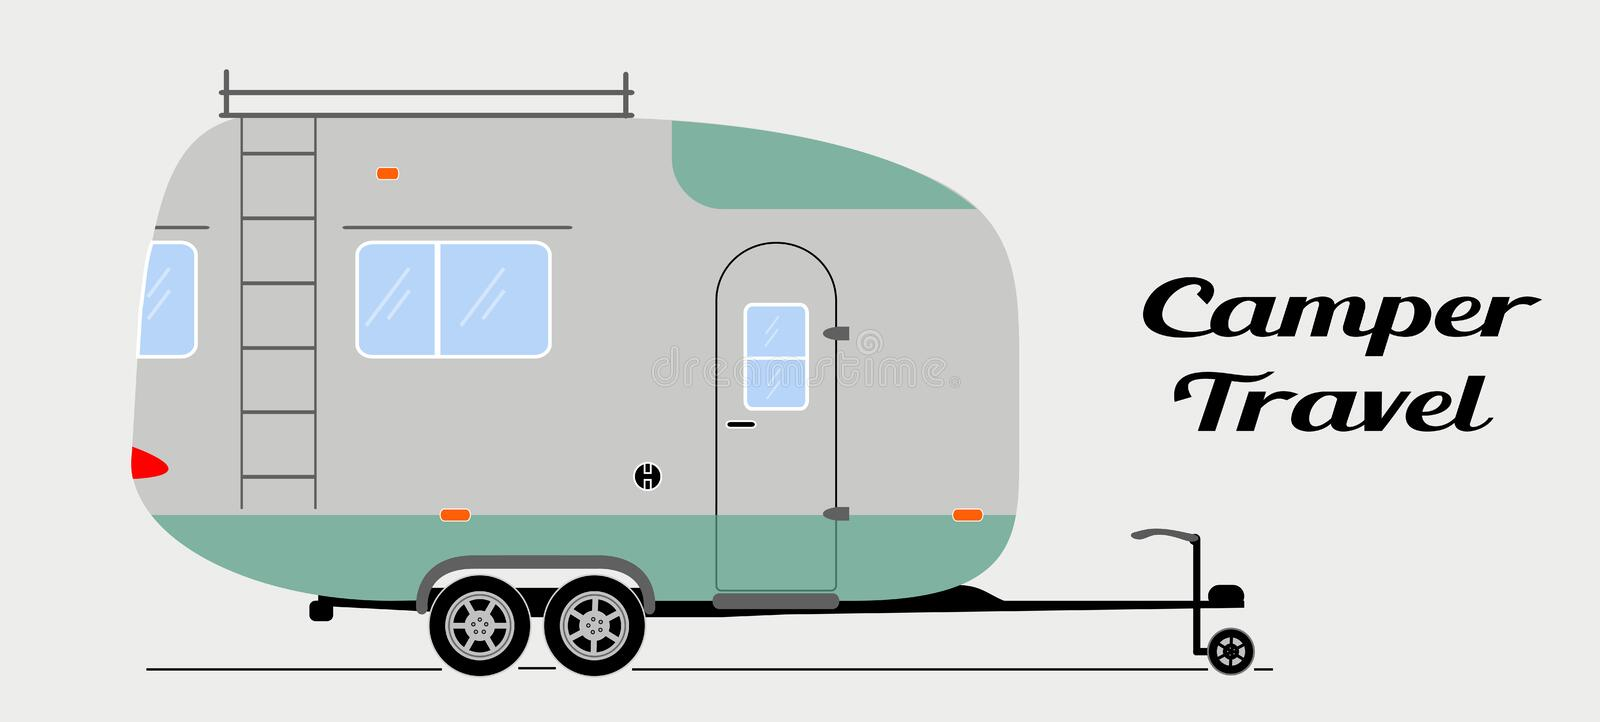 Modern vector camper trailer in flat style. Van illustration for travel leisure and adventure. royalty free illustration